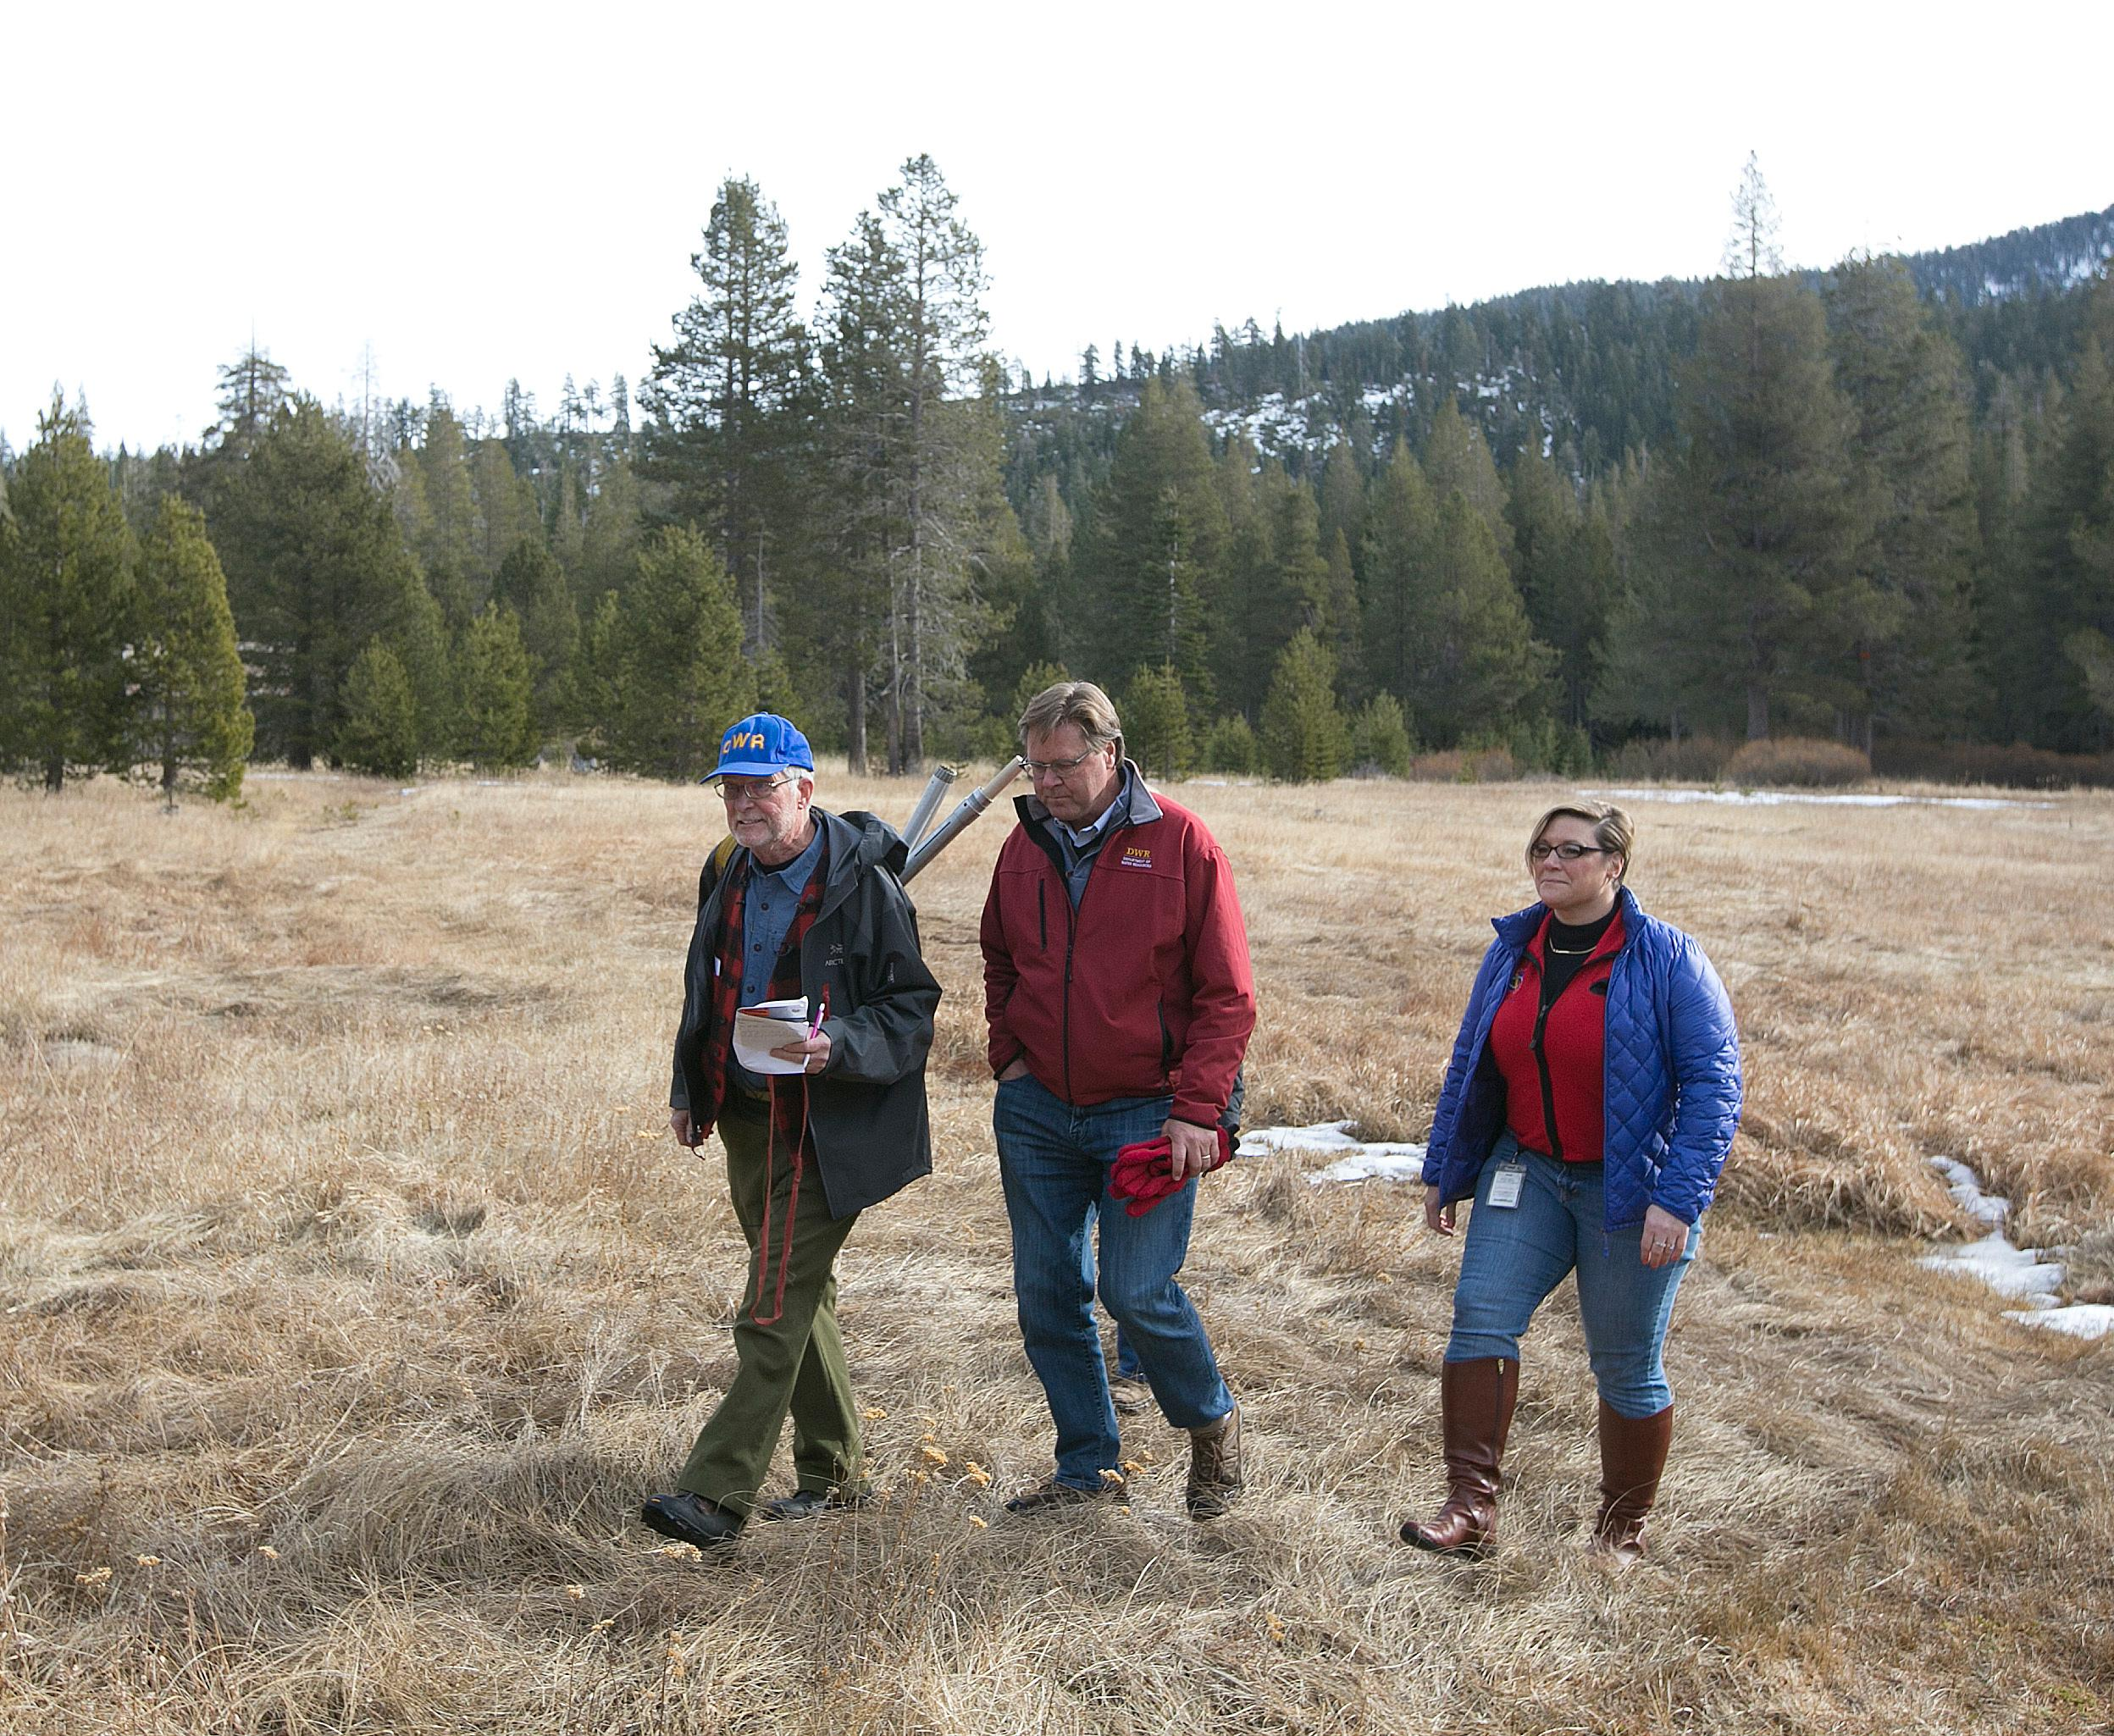 Frank Gehrke, chief of the California Cooperative Snow Surveys Program for the Department of Water Resources, left, accompanied by Grant Davis, director of the Dept. of Water Resources, center and Michelle Mead, a meteorologist with the National Weather Service, leave the nearly snow barren Phillips Station snow course, after conducting the first snow survey of the season, Wednesday, Jan. 3, 2018, near Echo Summit, Calif. The snow survey showed the snowpack at this location at 1.3 inches of depth with a water content of .4 inches. California's water managers are saying it's too early yet for fears that the state is sliding back into its historic five-year drought.(AP Photo/Rich Pedroncelli)